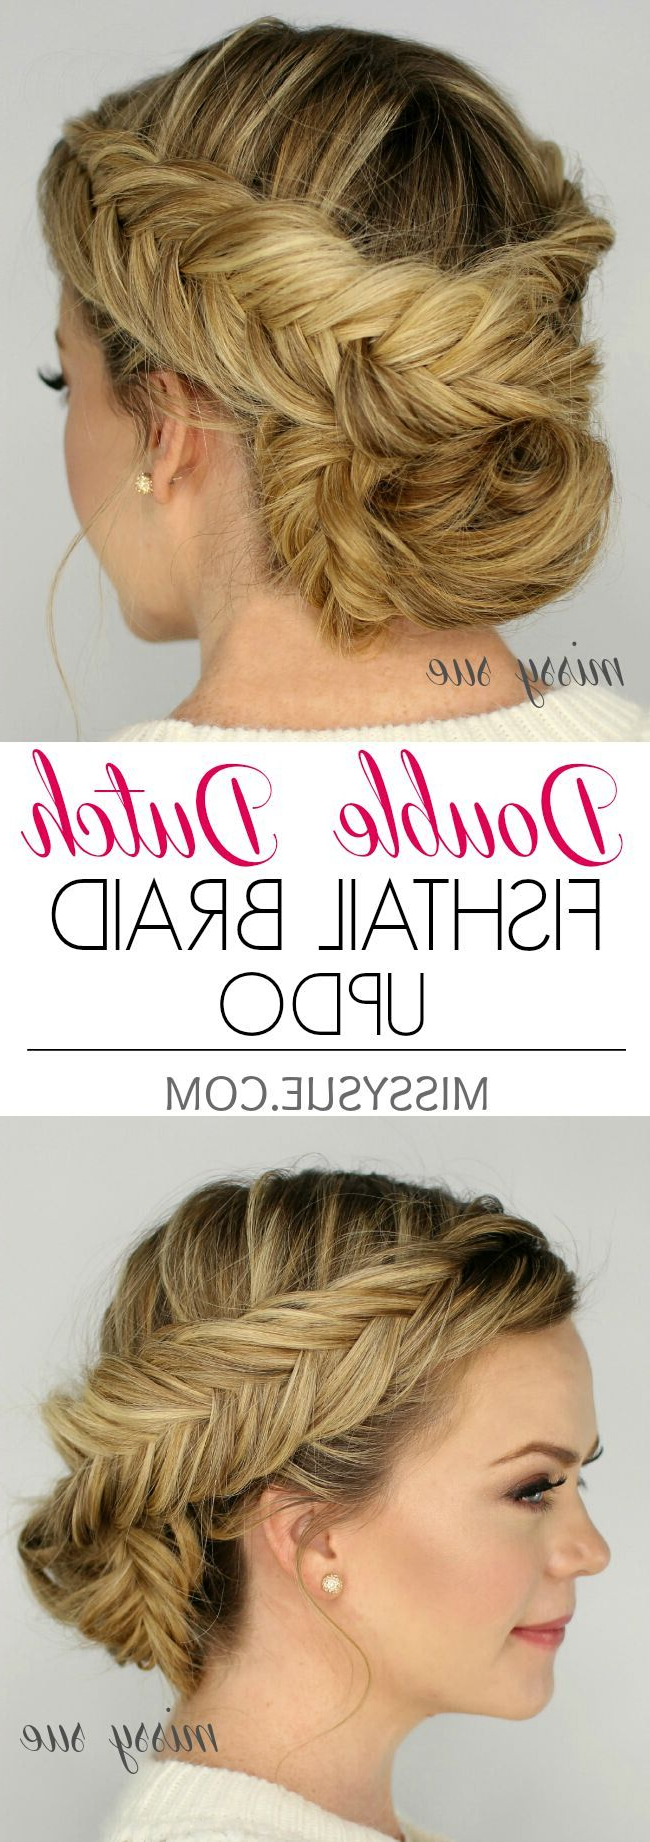 21 All New French Braid Updo Hairstyles – Popular Haircuts For Best And Newest Side Bun Twined Prom Hairstyles With A Braid (View 2 of 20)